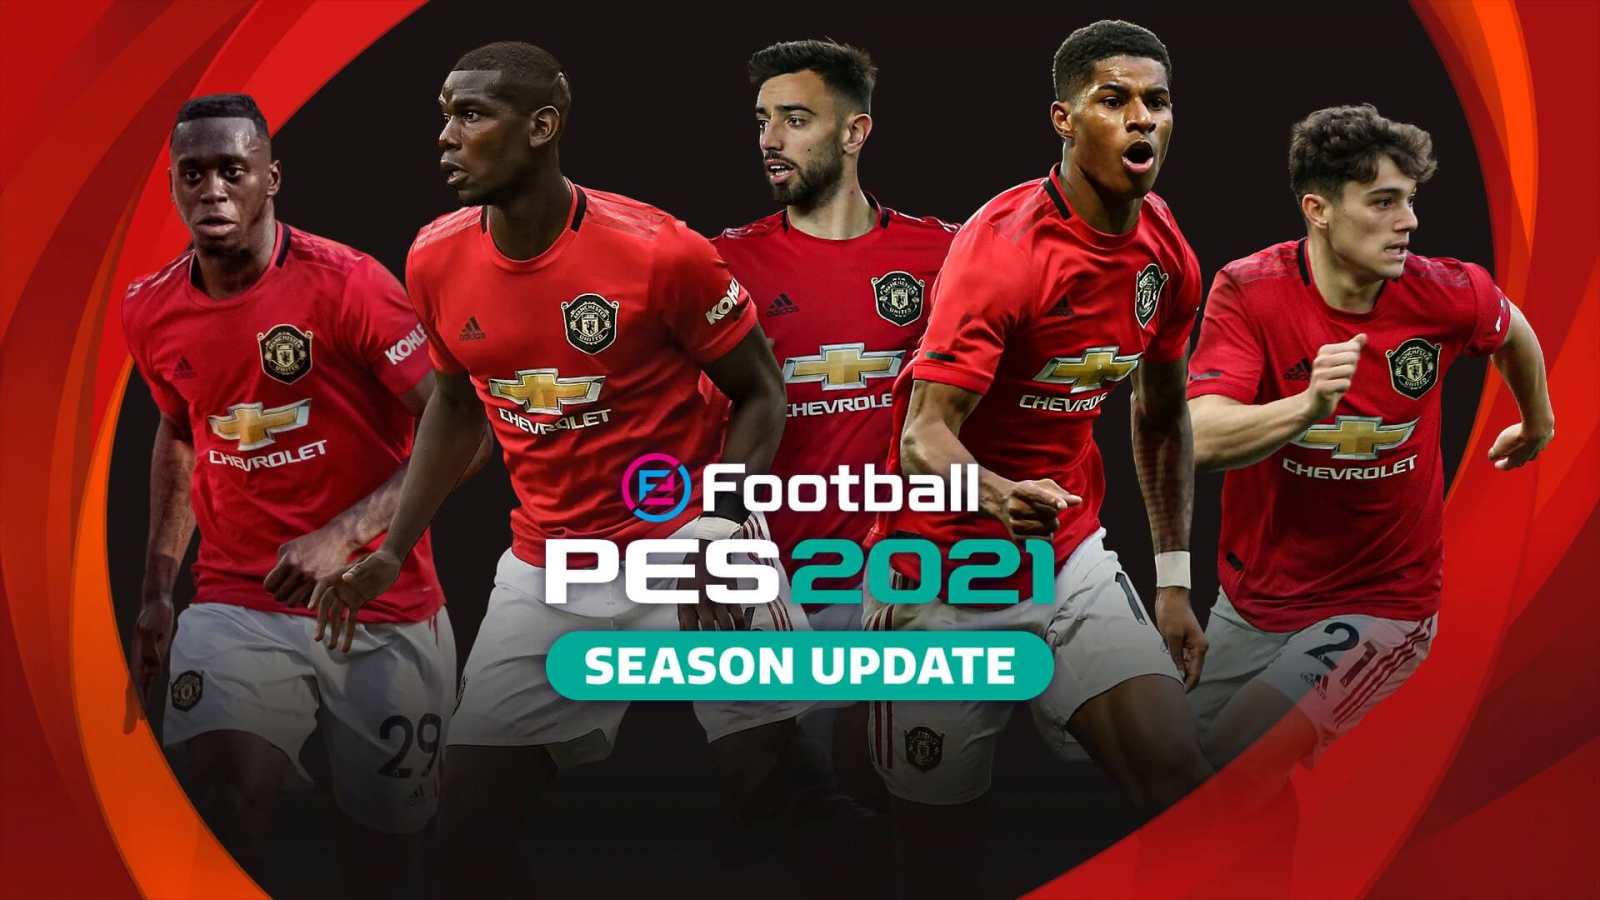 Free Download Manchester United 2021 Team Wallpapers 1920x1080 For Your Desktop Mobile Tablet Explore 42 Manchester United 2021 Wallpapers Manchester United Wallpaper Free Manchester United Wallpaper Manchester United Hd Wallpapers